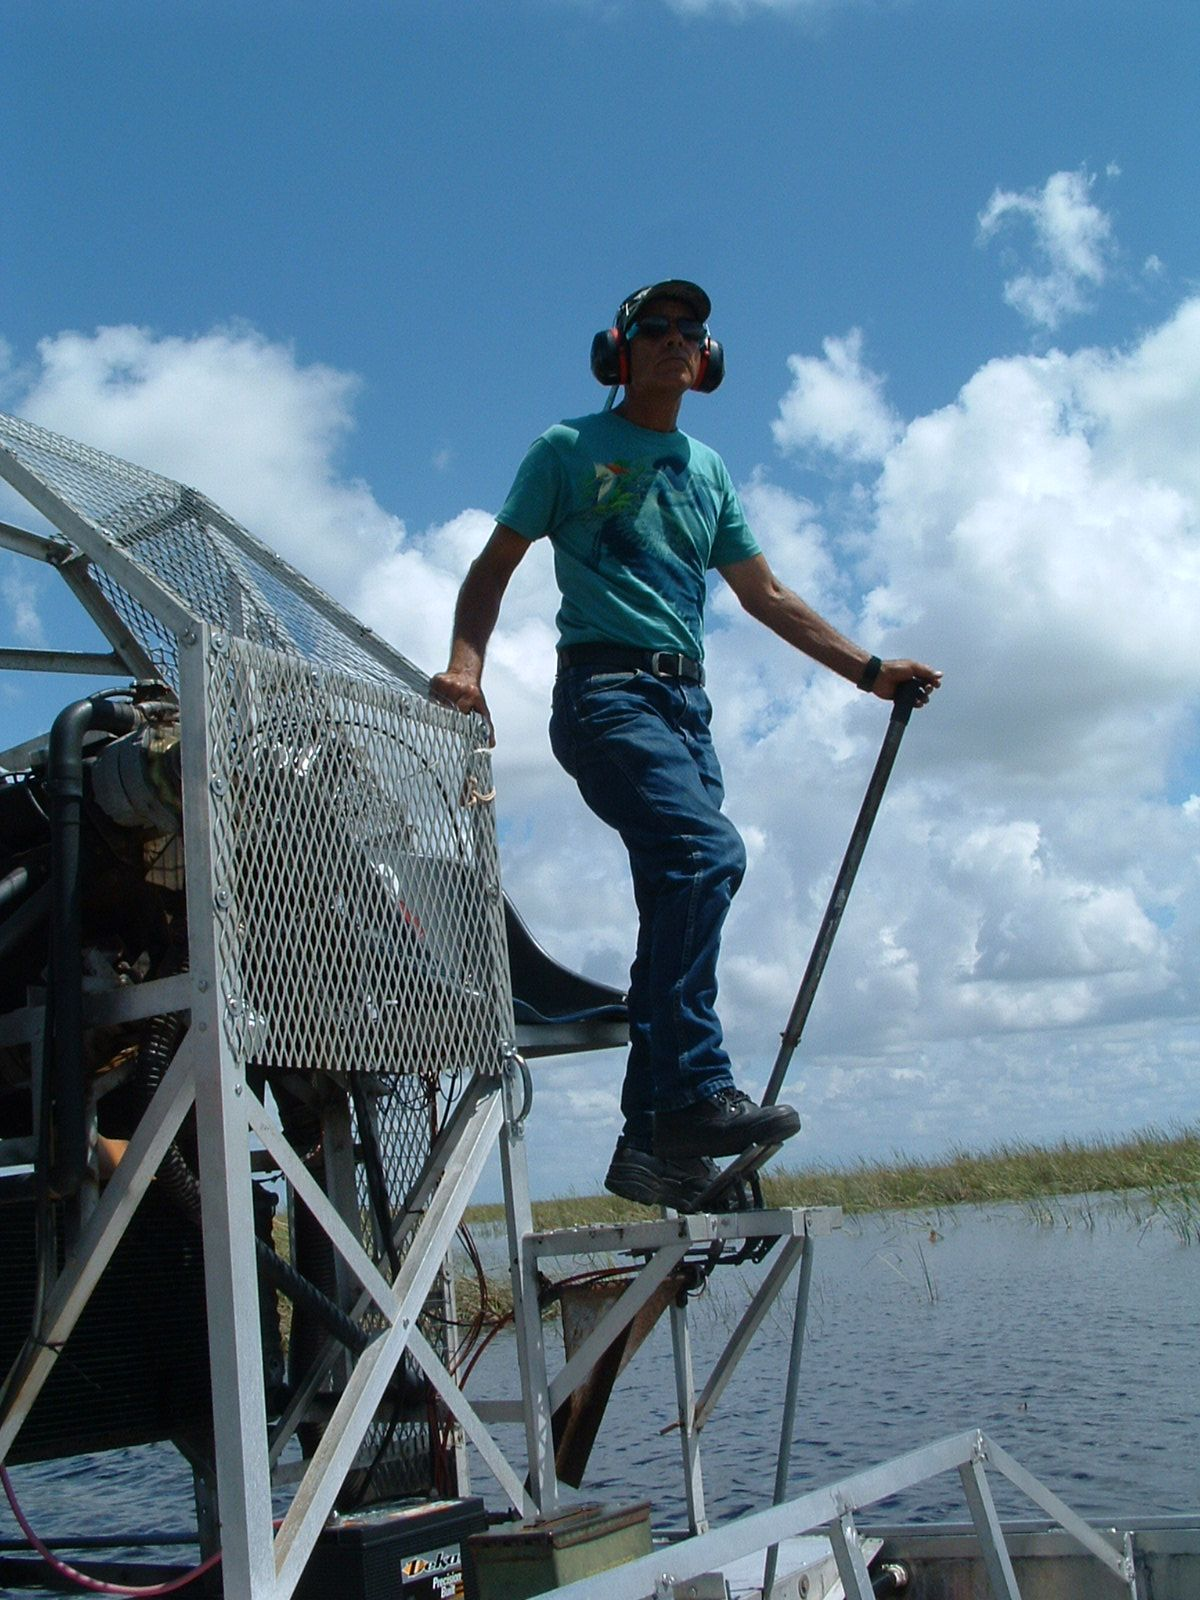 Everglades Airboat rides, Everglades airboat, Airboat